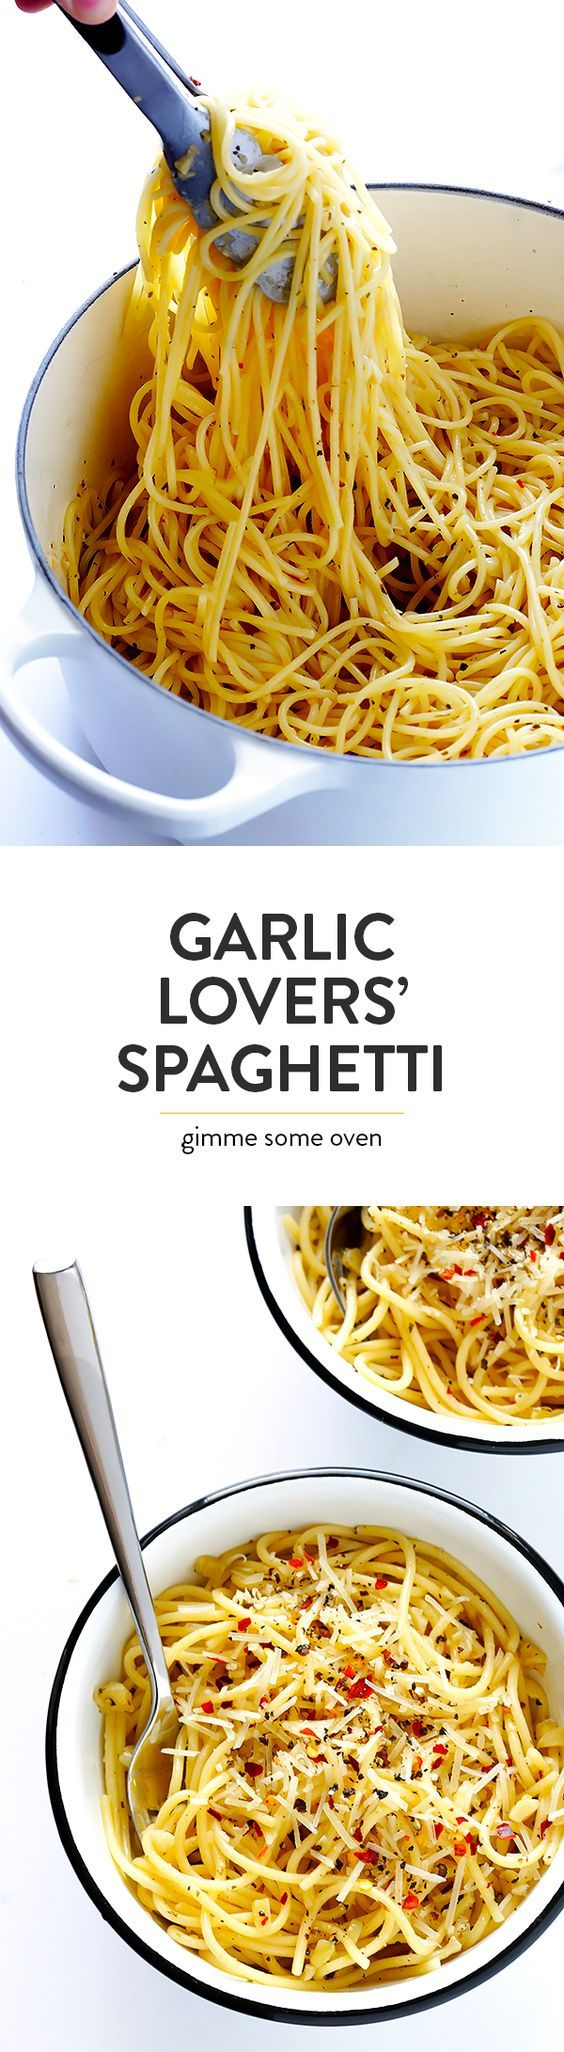 This Garlic Lovers' Spaghetti is quick and easy to make, it's packed with simple and ultra-garlicky Italian flavors, and it's absolutely delicious.   gimmesomeoven.com